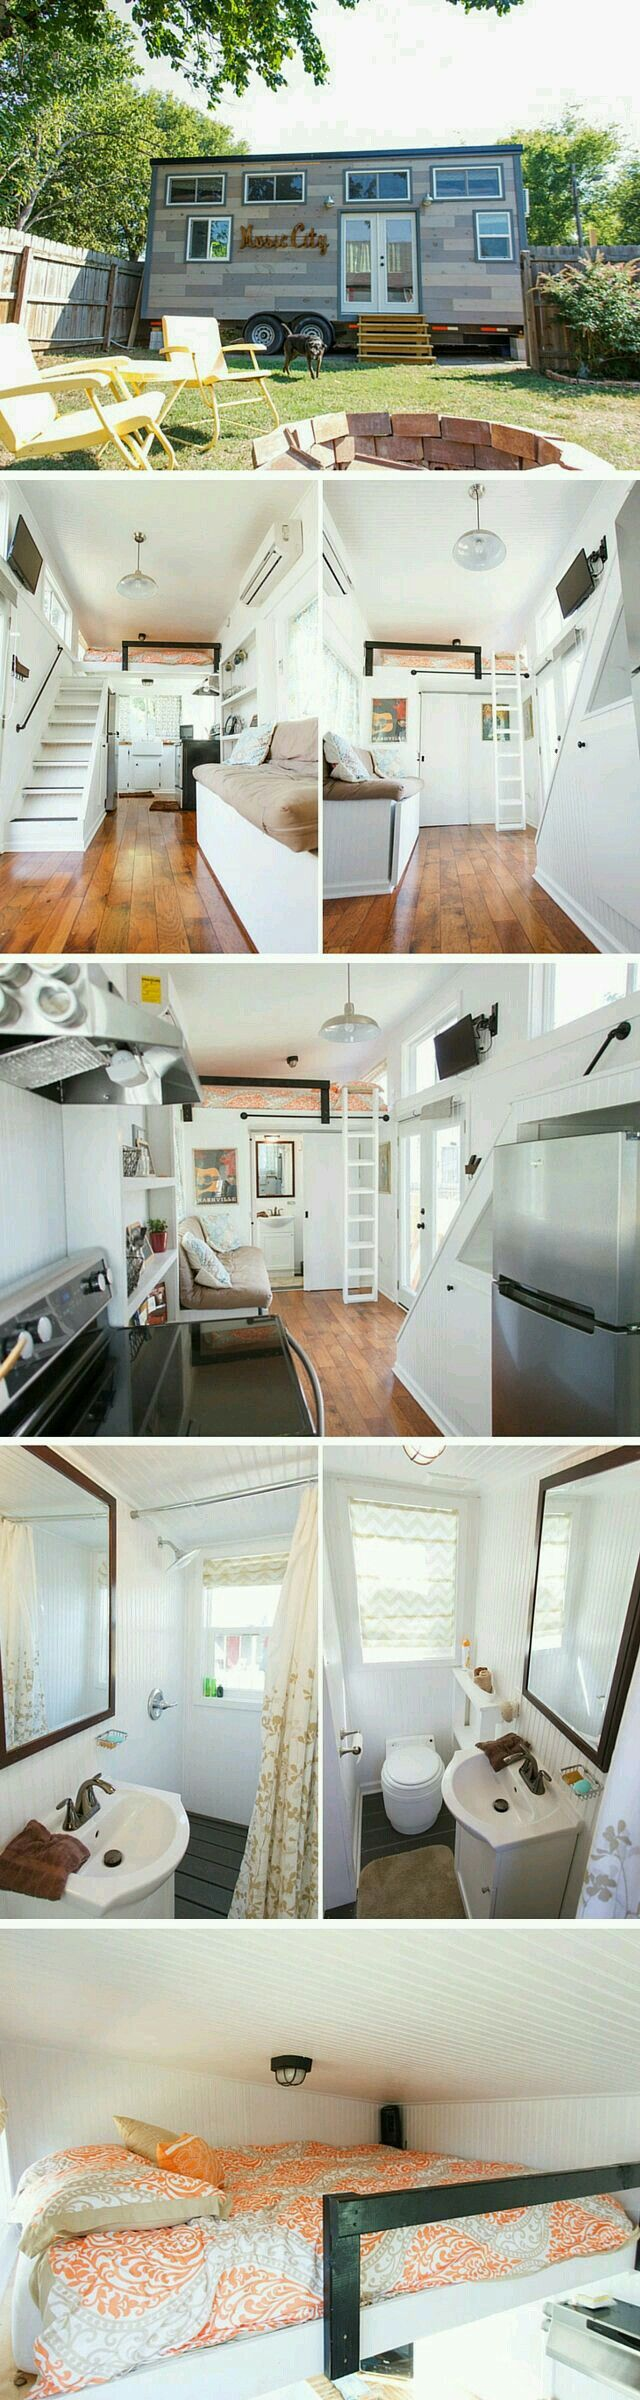 364 best My Tiny House images on Pinterest | Room dividers, Fit and ...